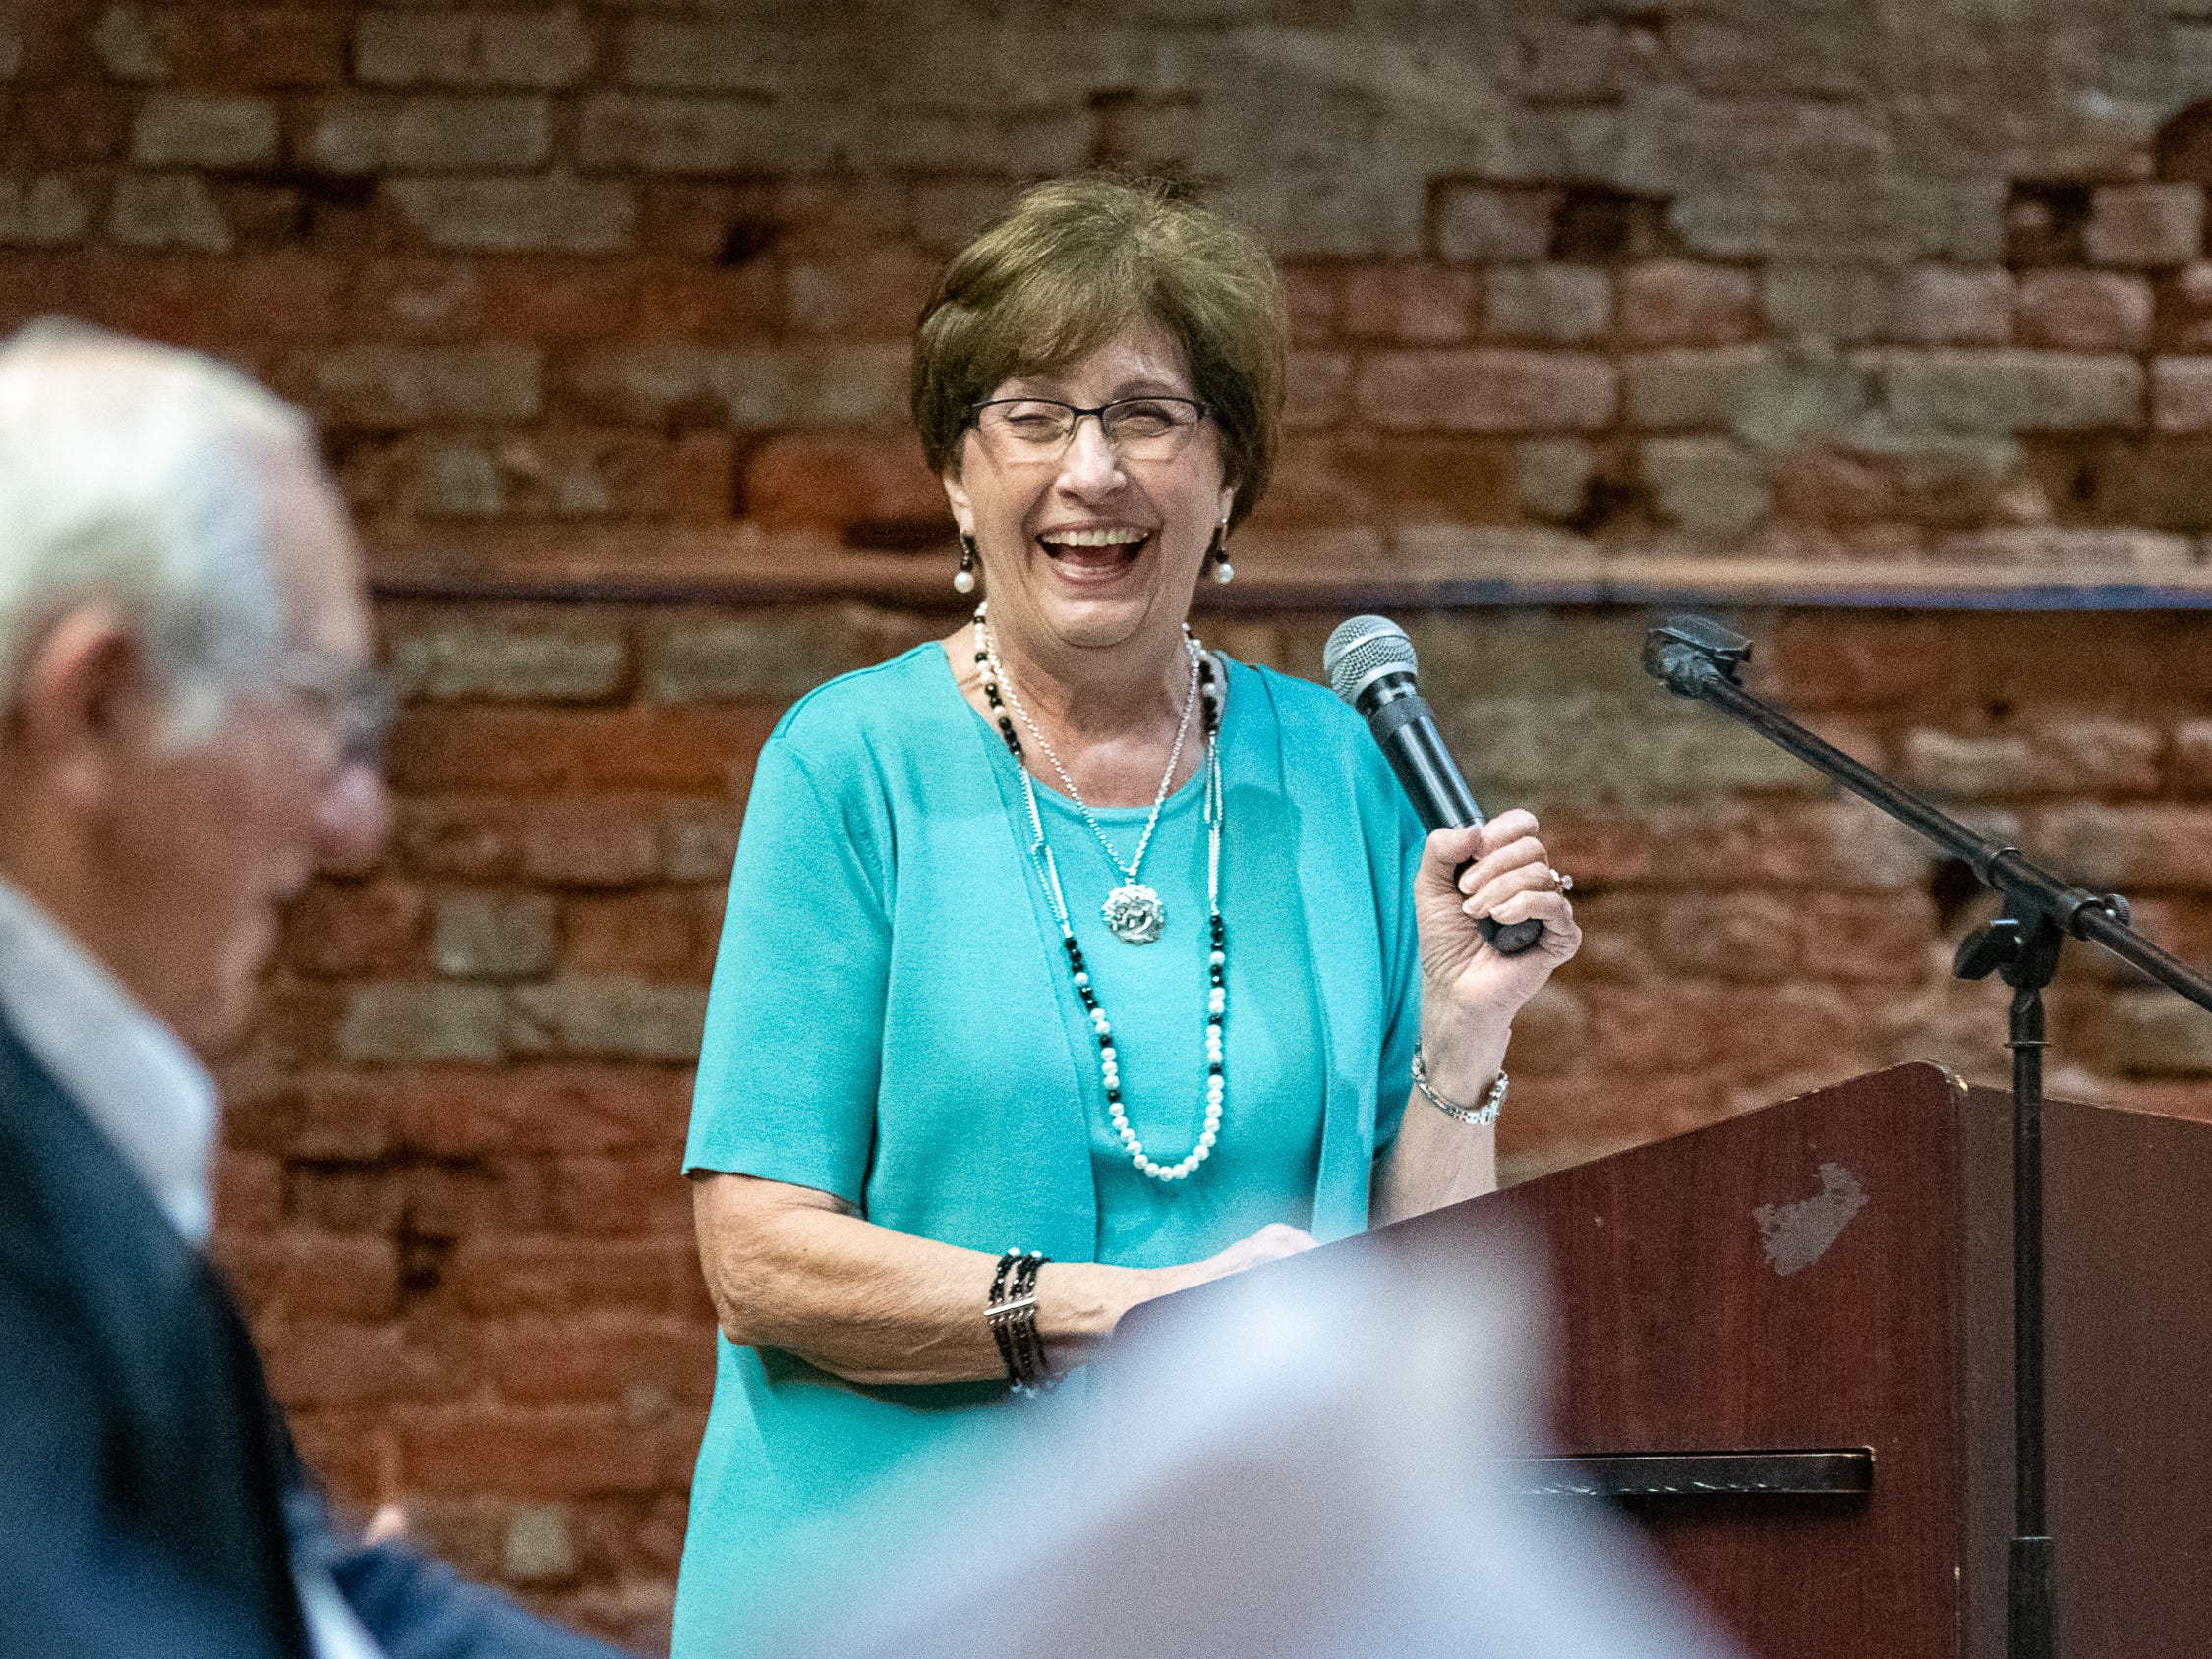 Gov. Kathleen Blanco speaking at the ceremony to unveil the exhibit in the Doc Voorhies wing of the Bayou Teche Museum. Thursday, Feb. 7, 2019.